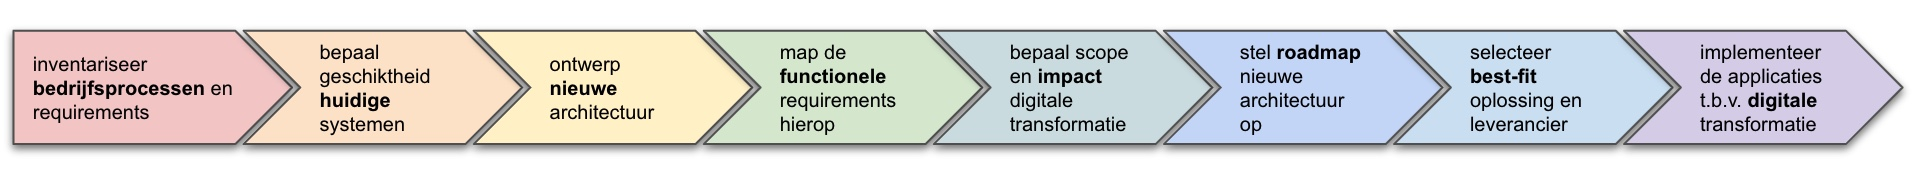 digitale transformatie it roadmap stappenplan